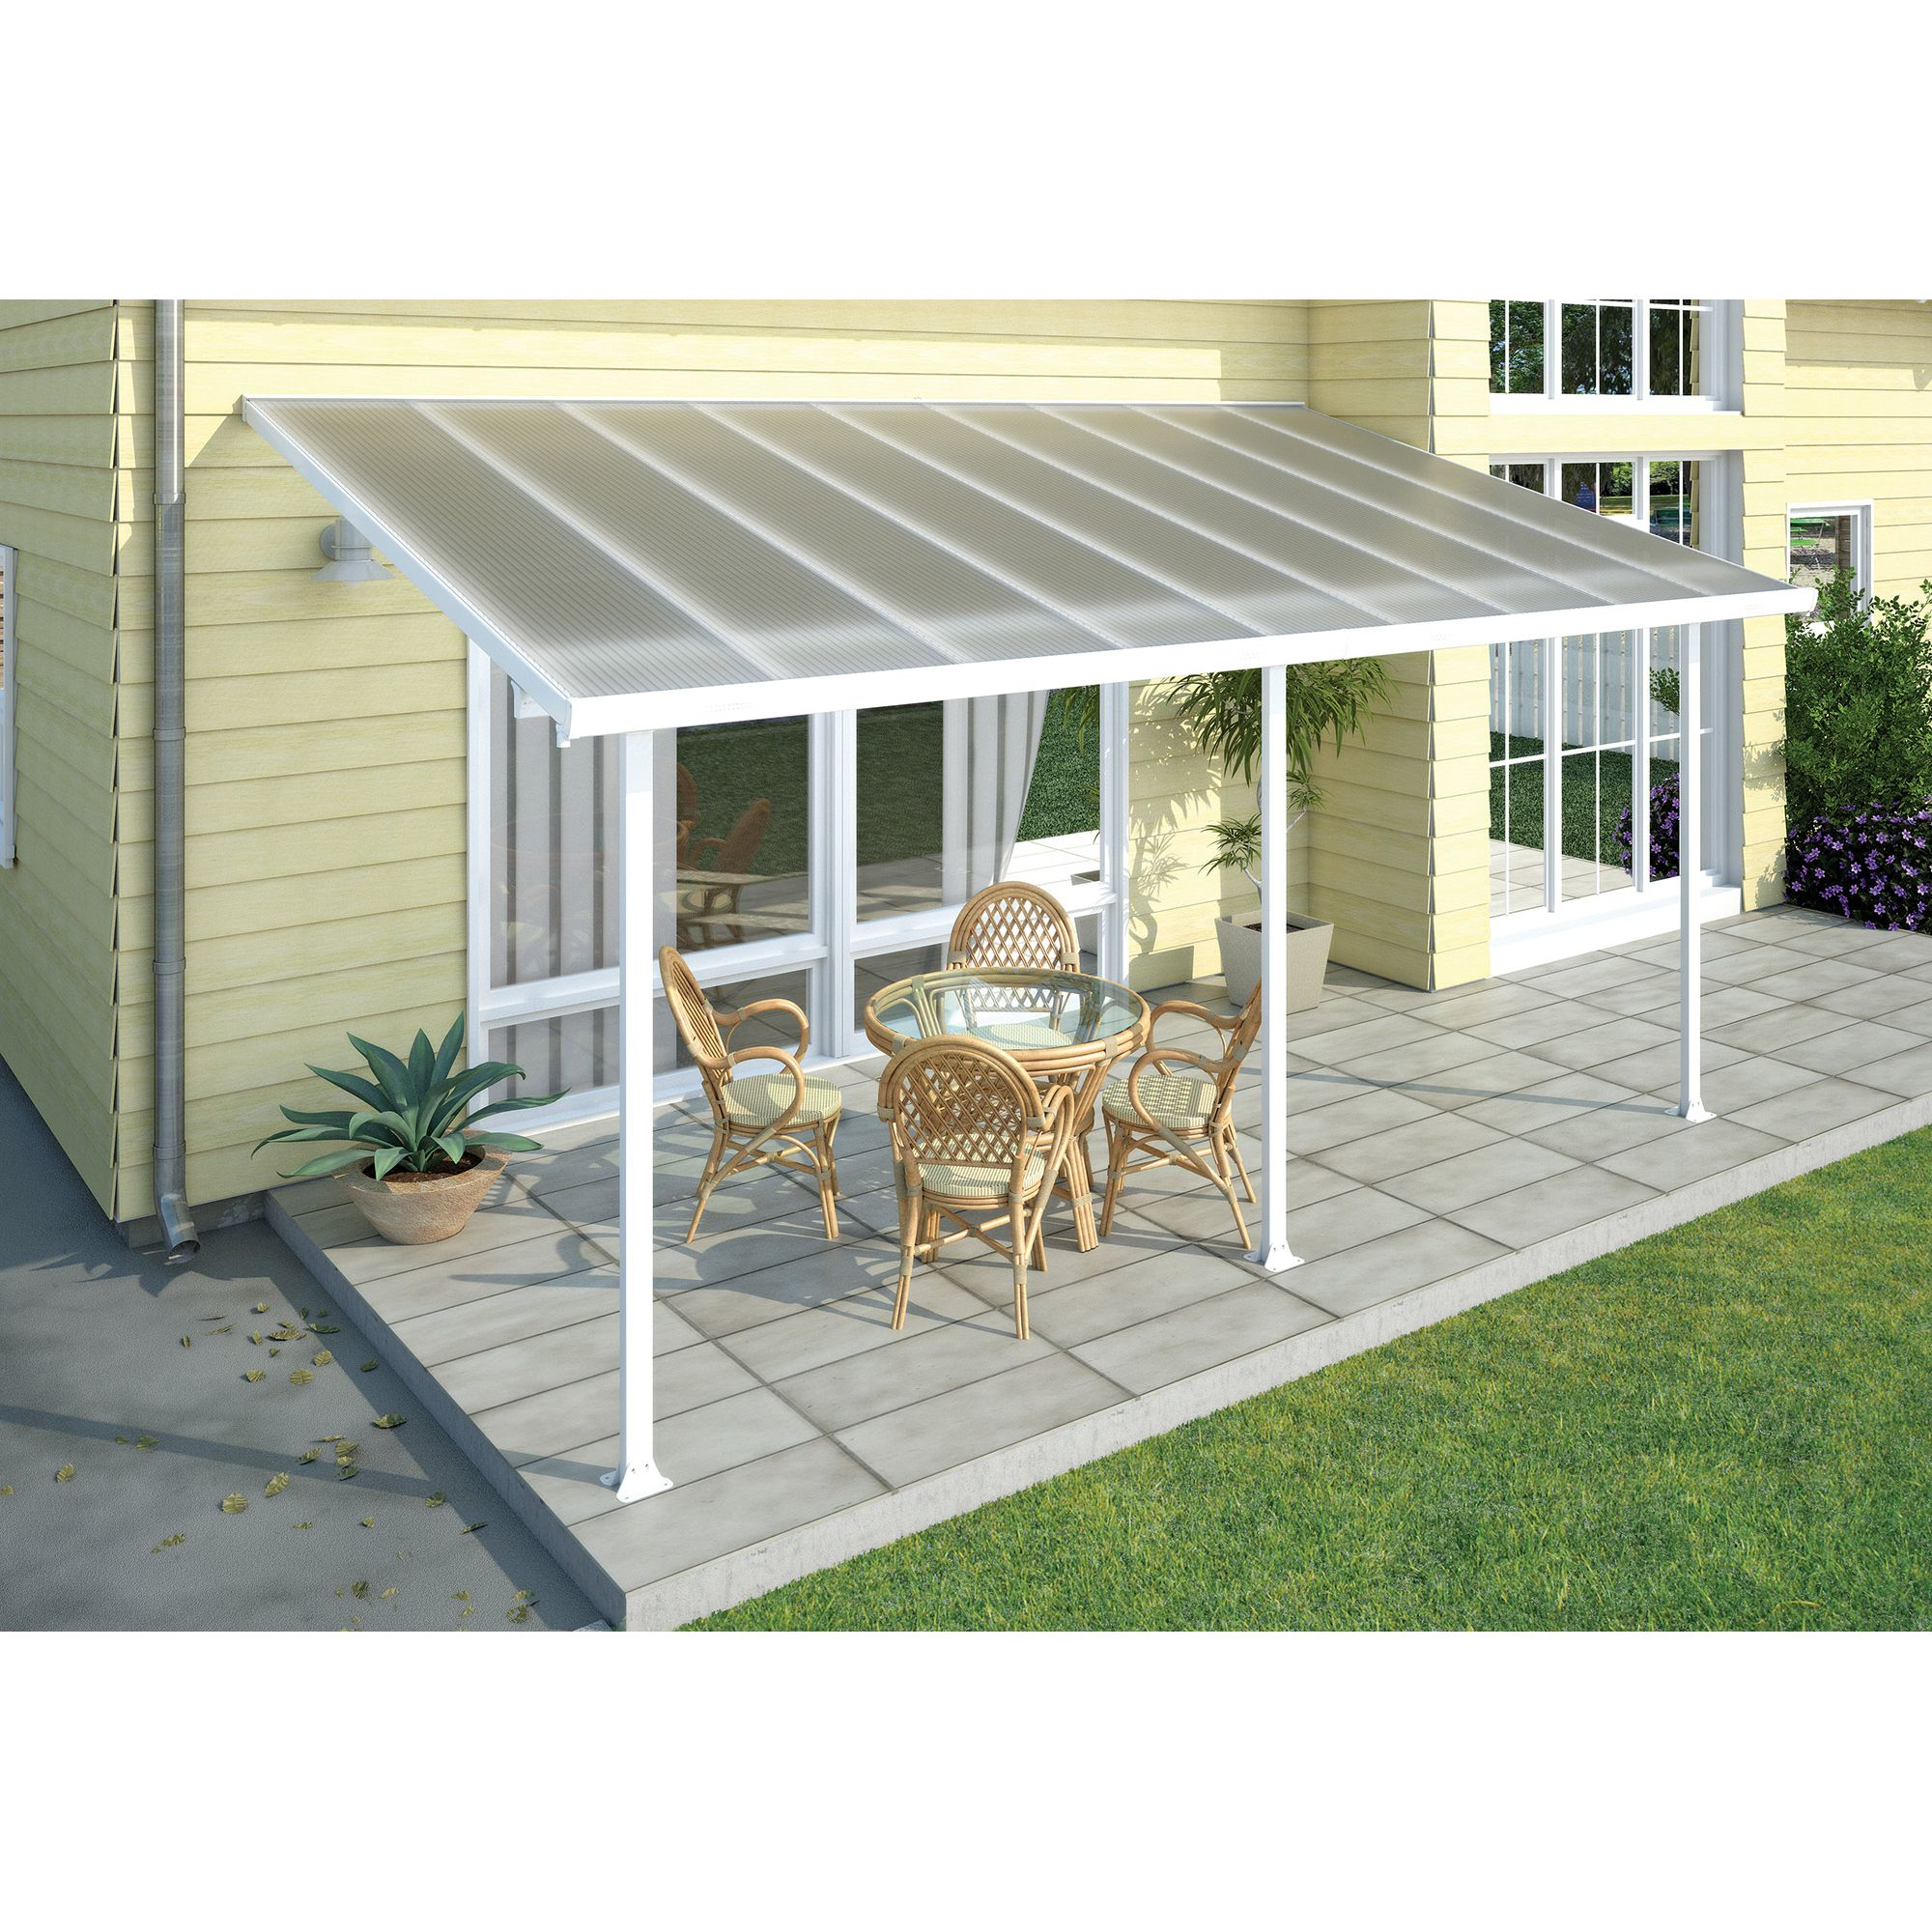 FERIA LEAN TO CARPORT AND PATIO COVER 3X12.20 WHITE at Tesco Direct